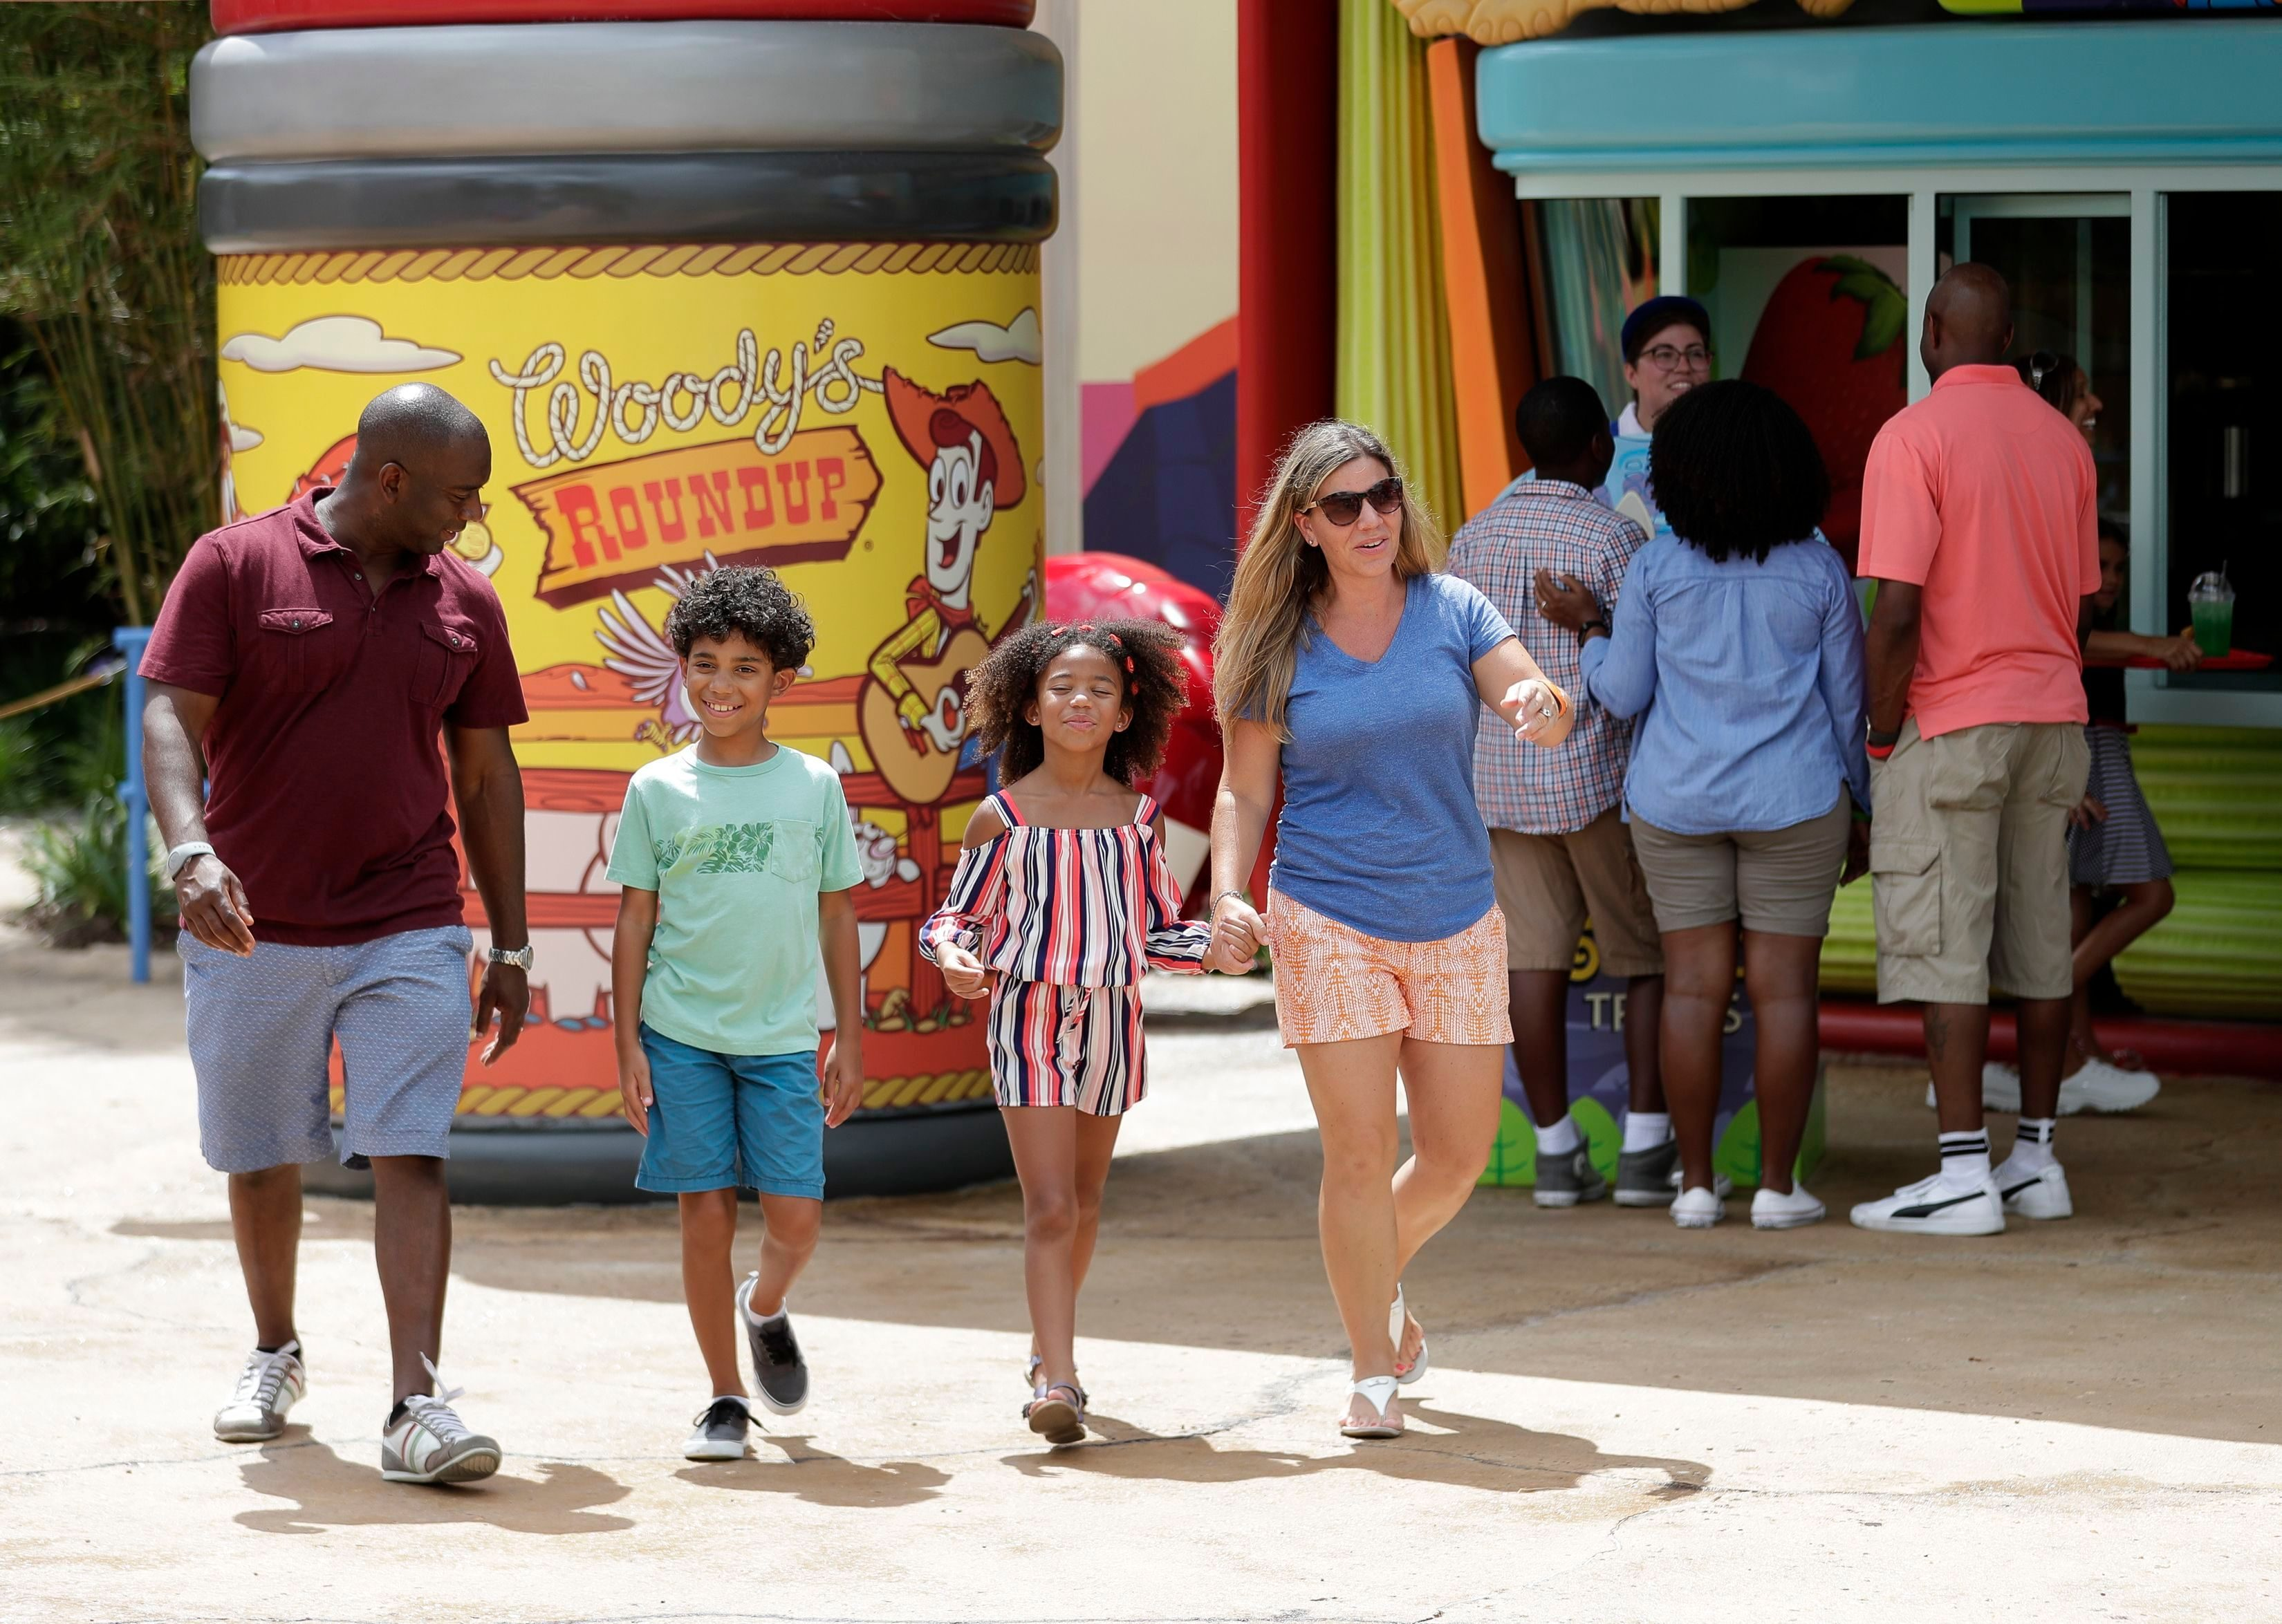 Mandatory Credit: Photo by John Raoux/AP/Shutterstock (9730910i) Park guests walk to Woody's Lunchbox, a restaurant, at Toy Story Land in Disney's Hollywood Studios at Walt Disney World in Lake Buena Vista, Fla Toy Story Land Preview, Lake Buena Vista, USA - 23 Jun 2018